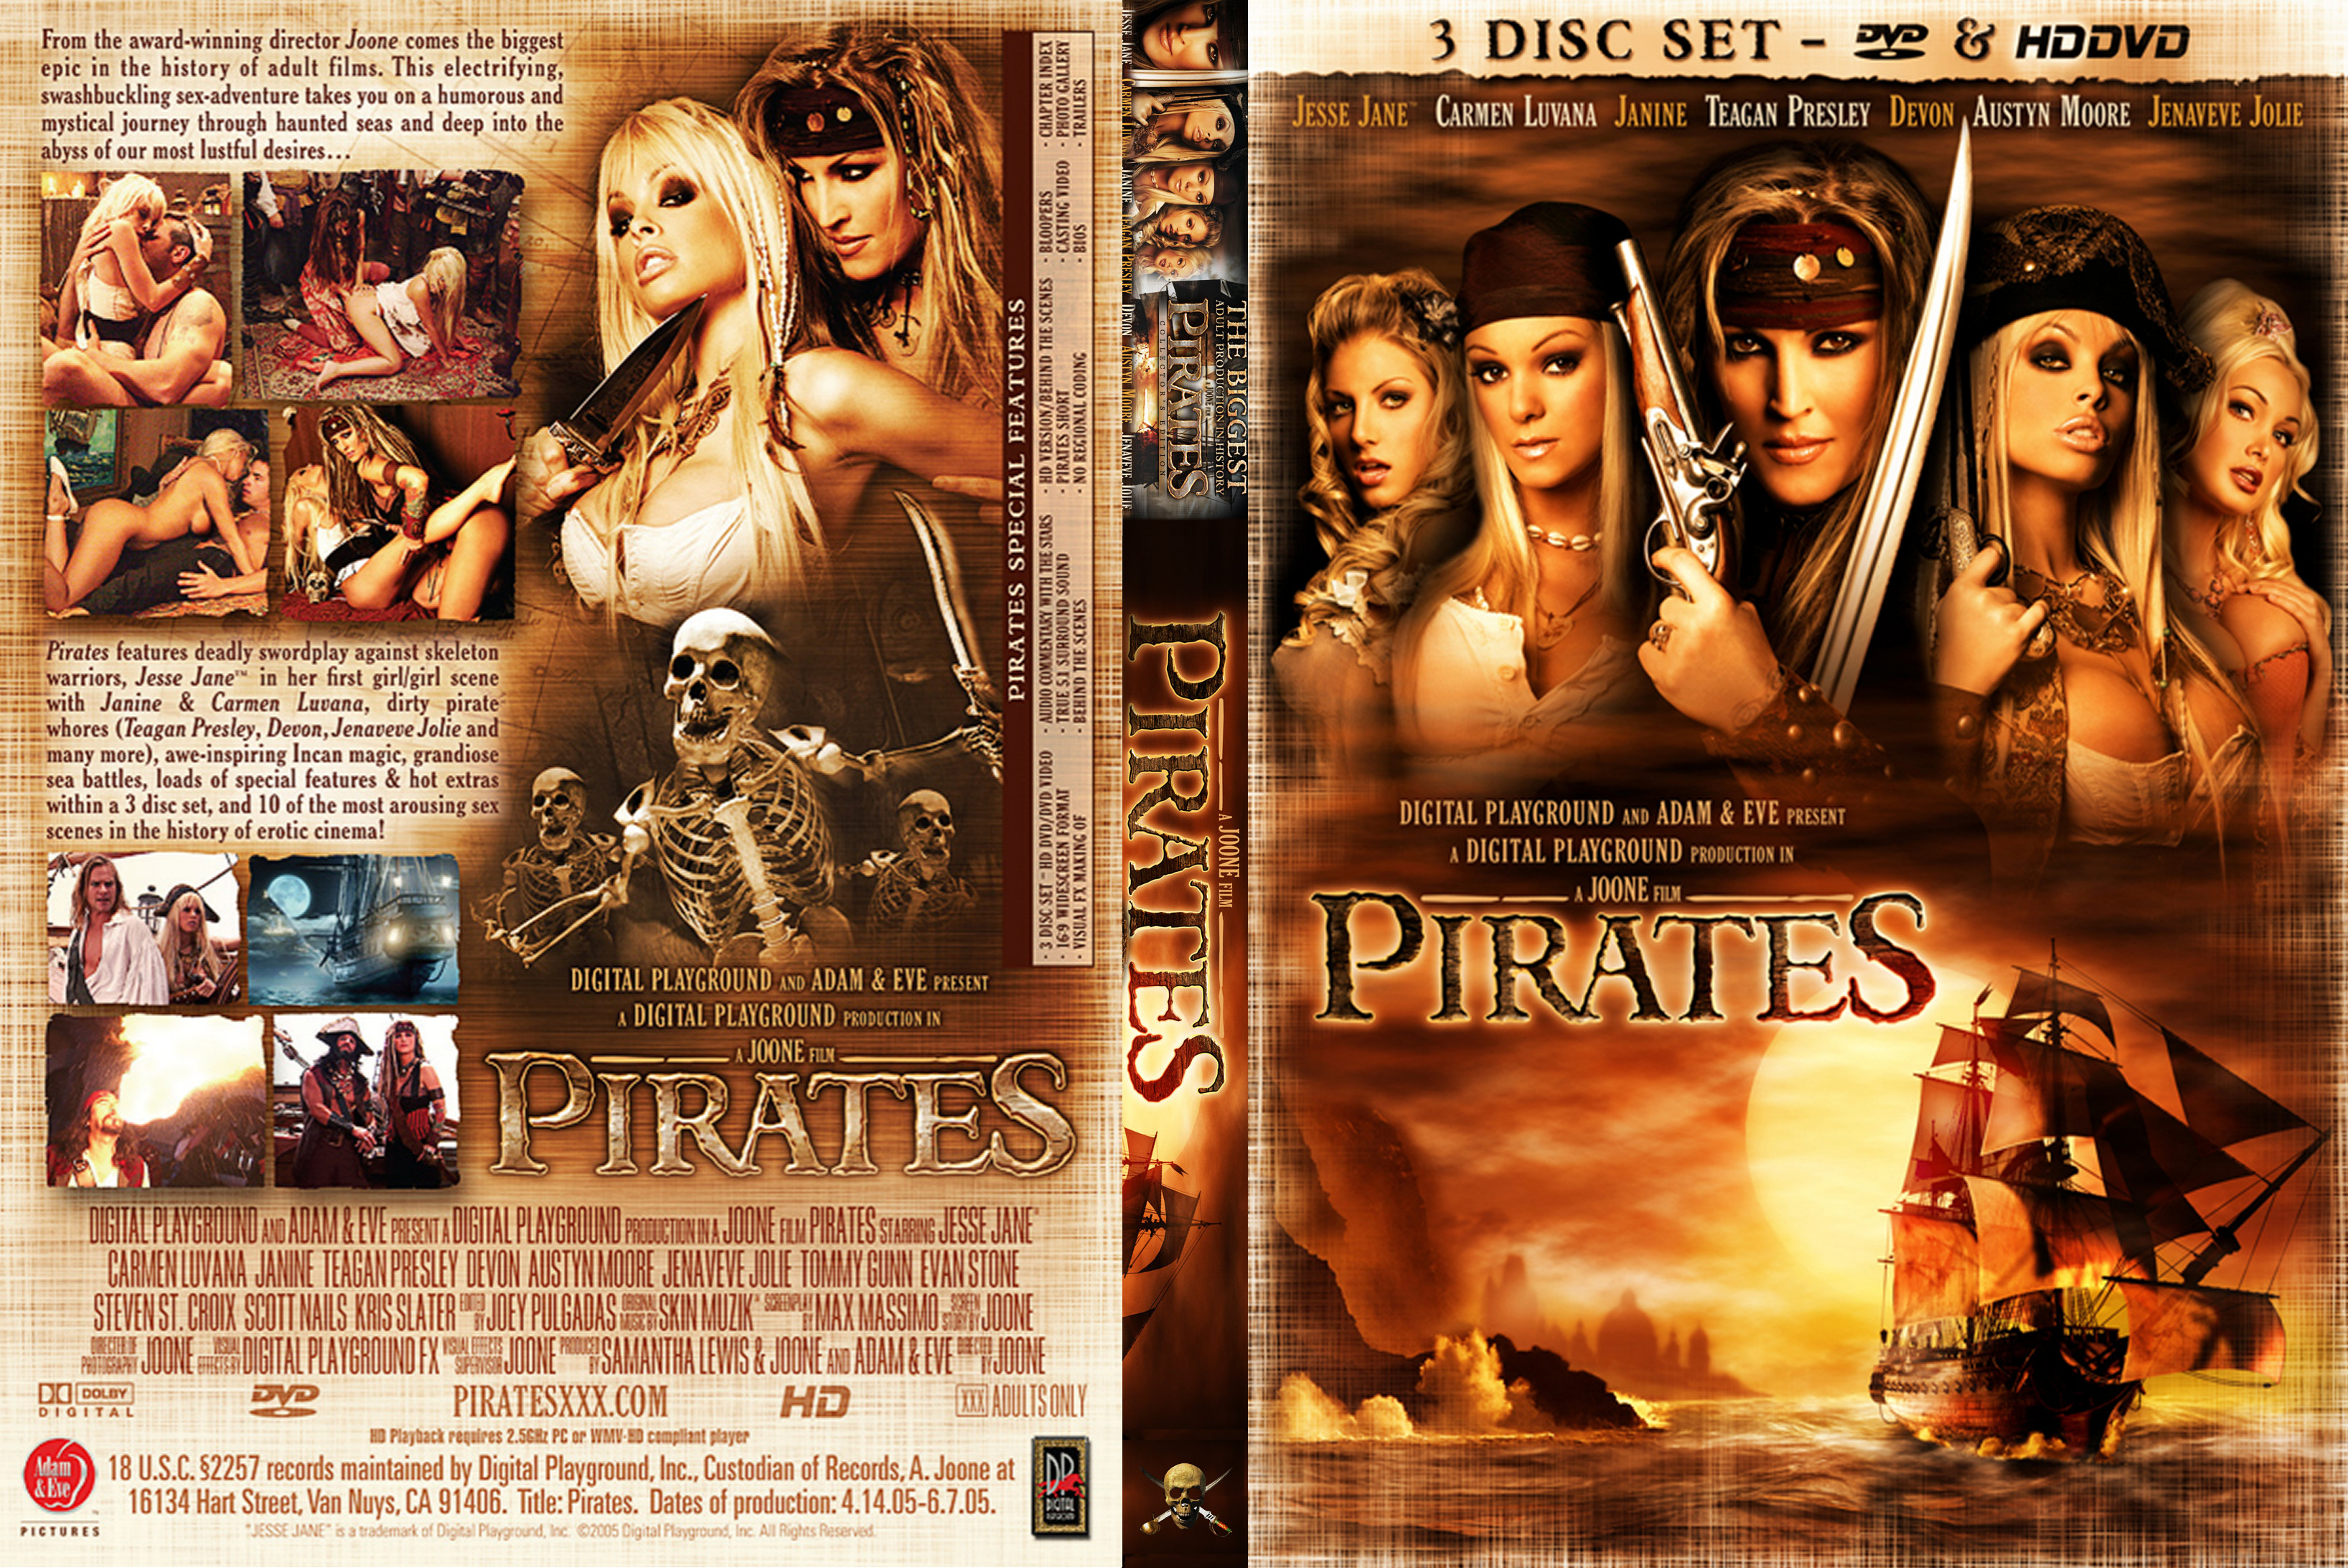 The pirates of the caribbean porn parody hentai movies